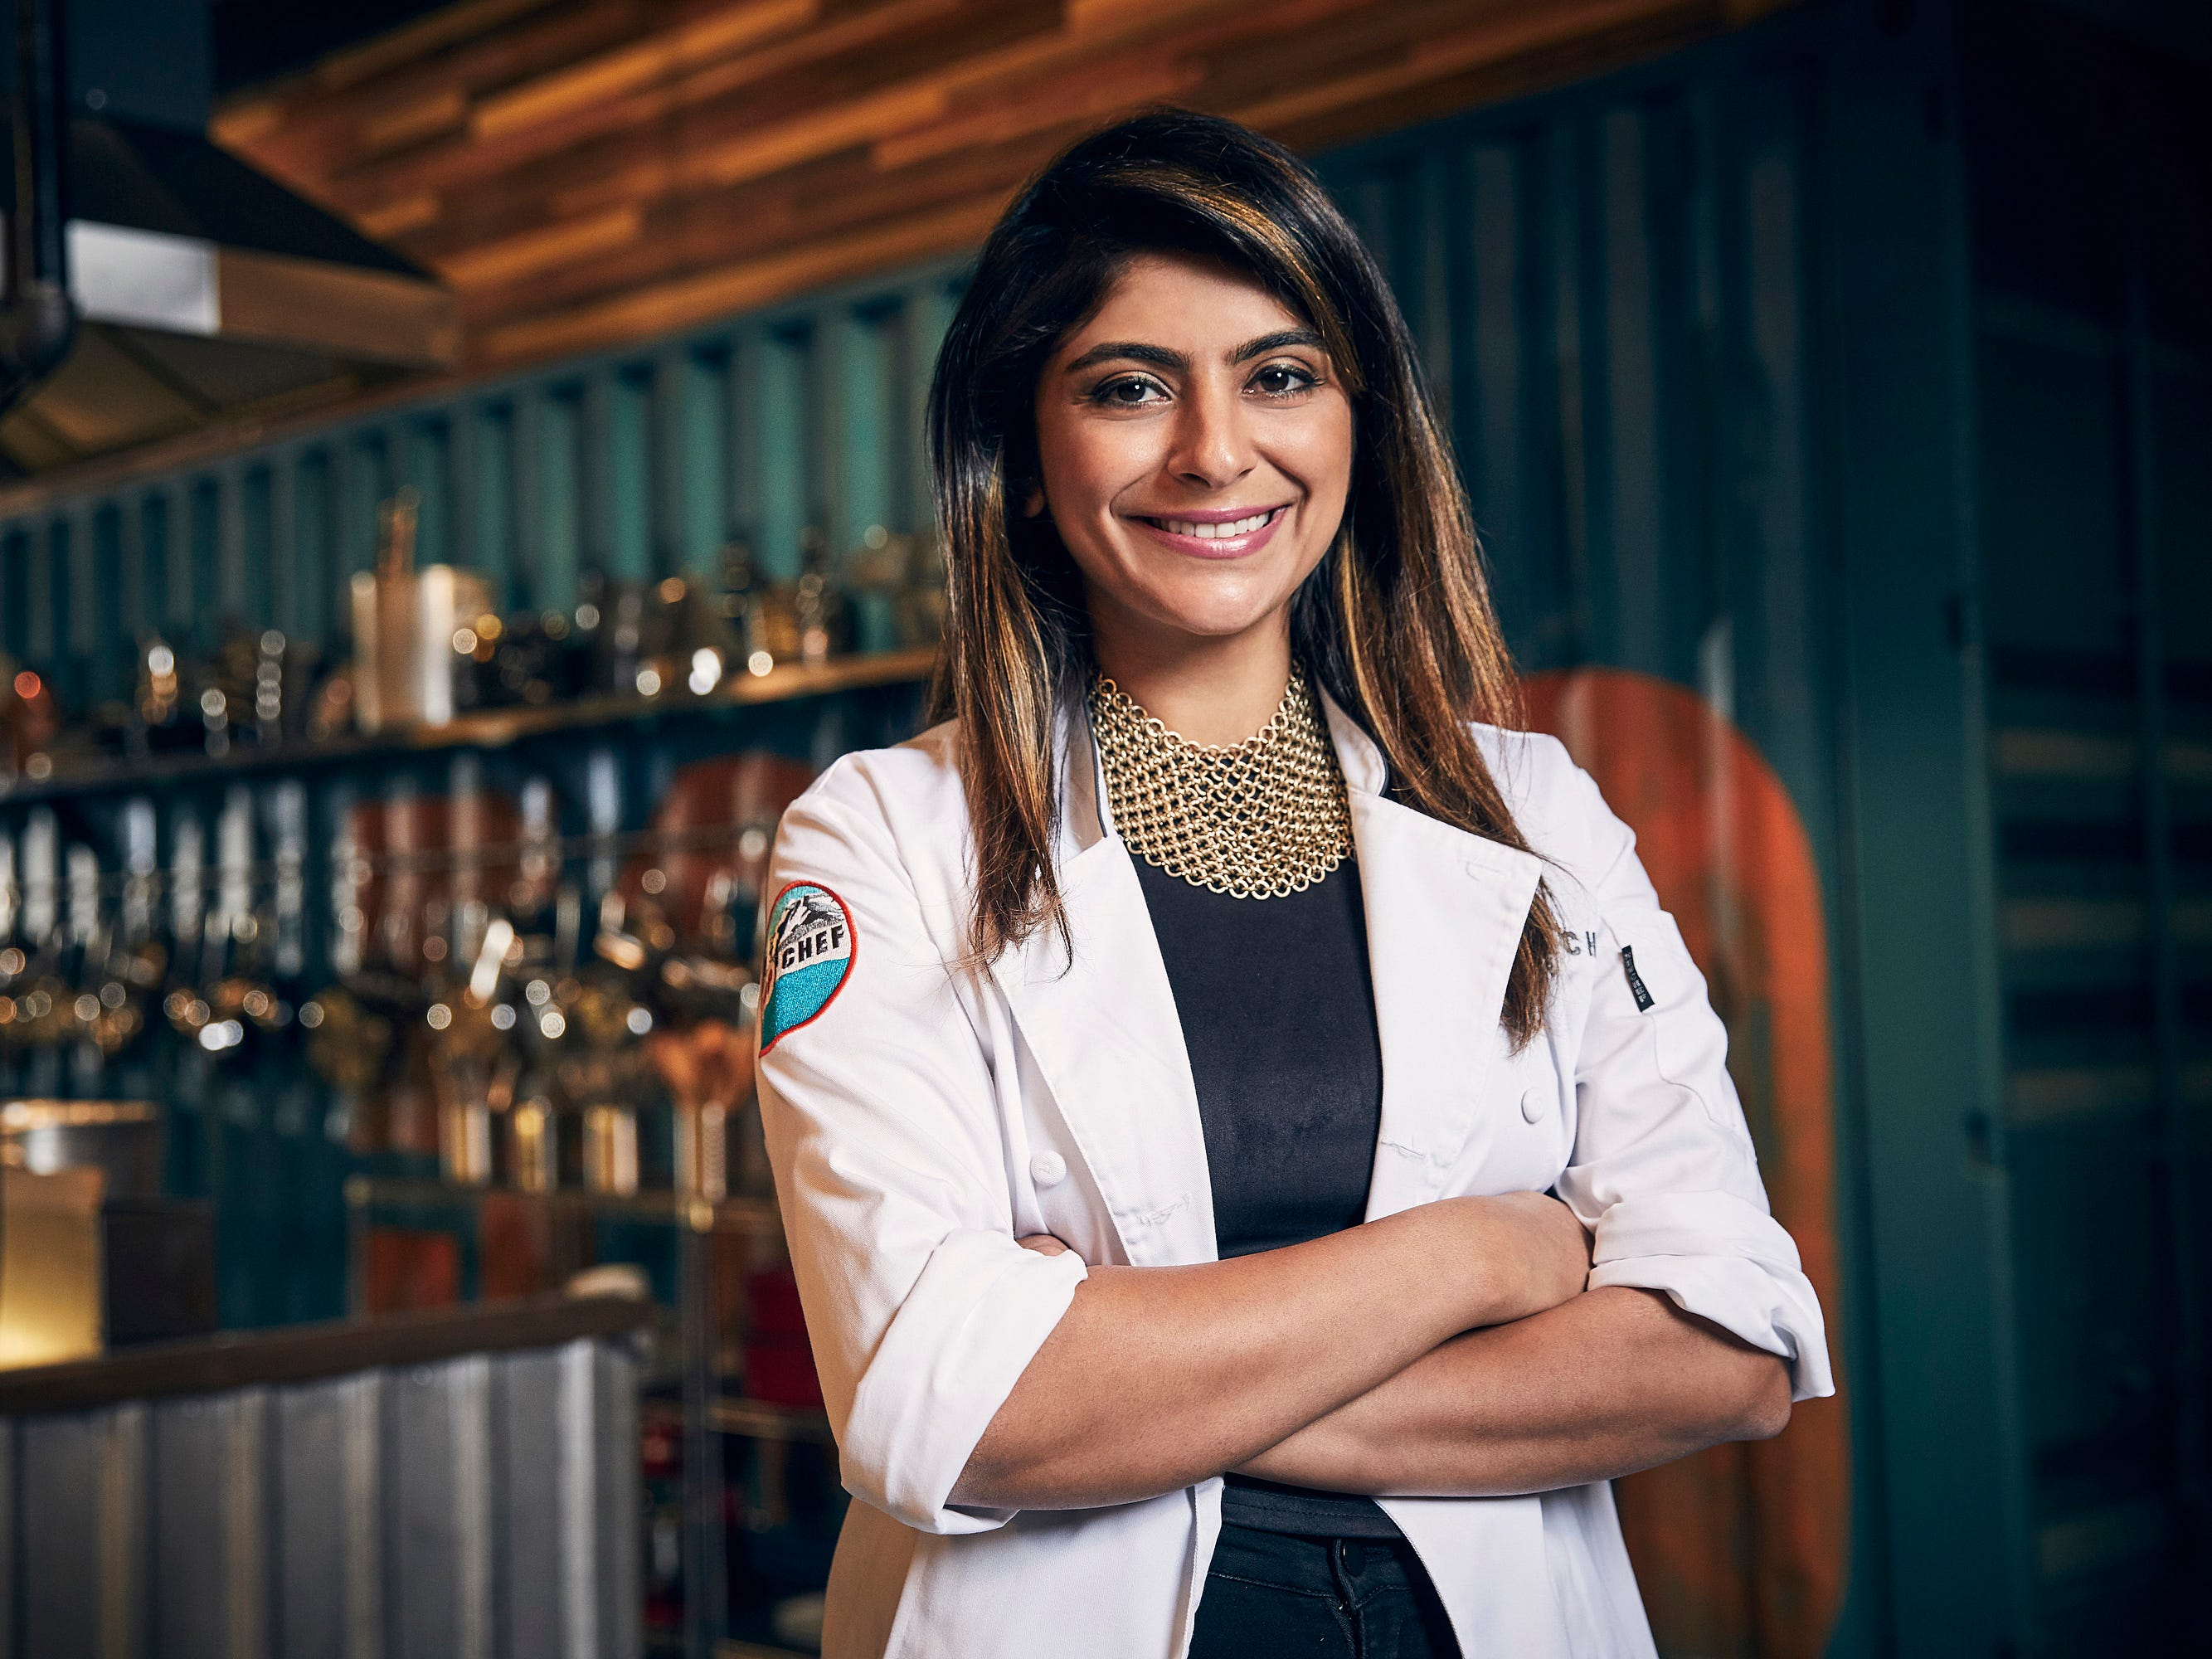 """Top Chef"" star Fatima Ali has died at age 29."